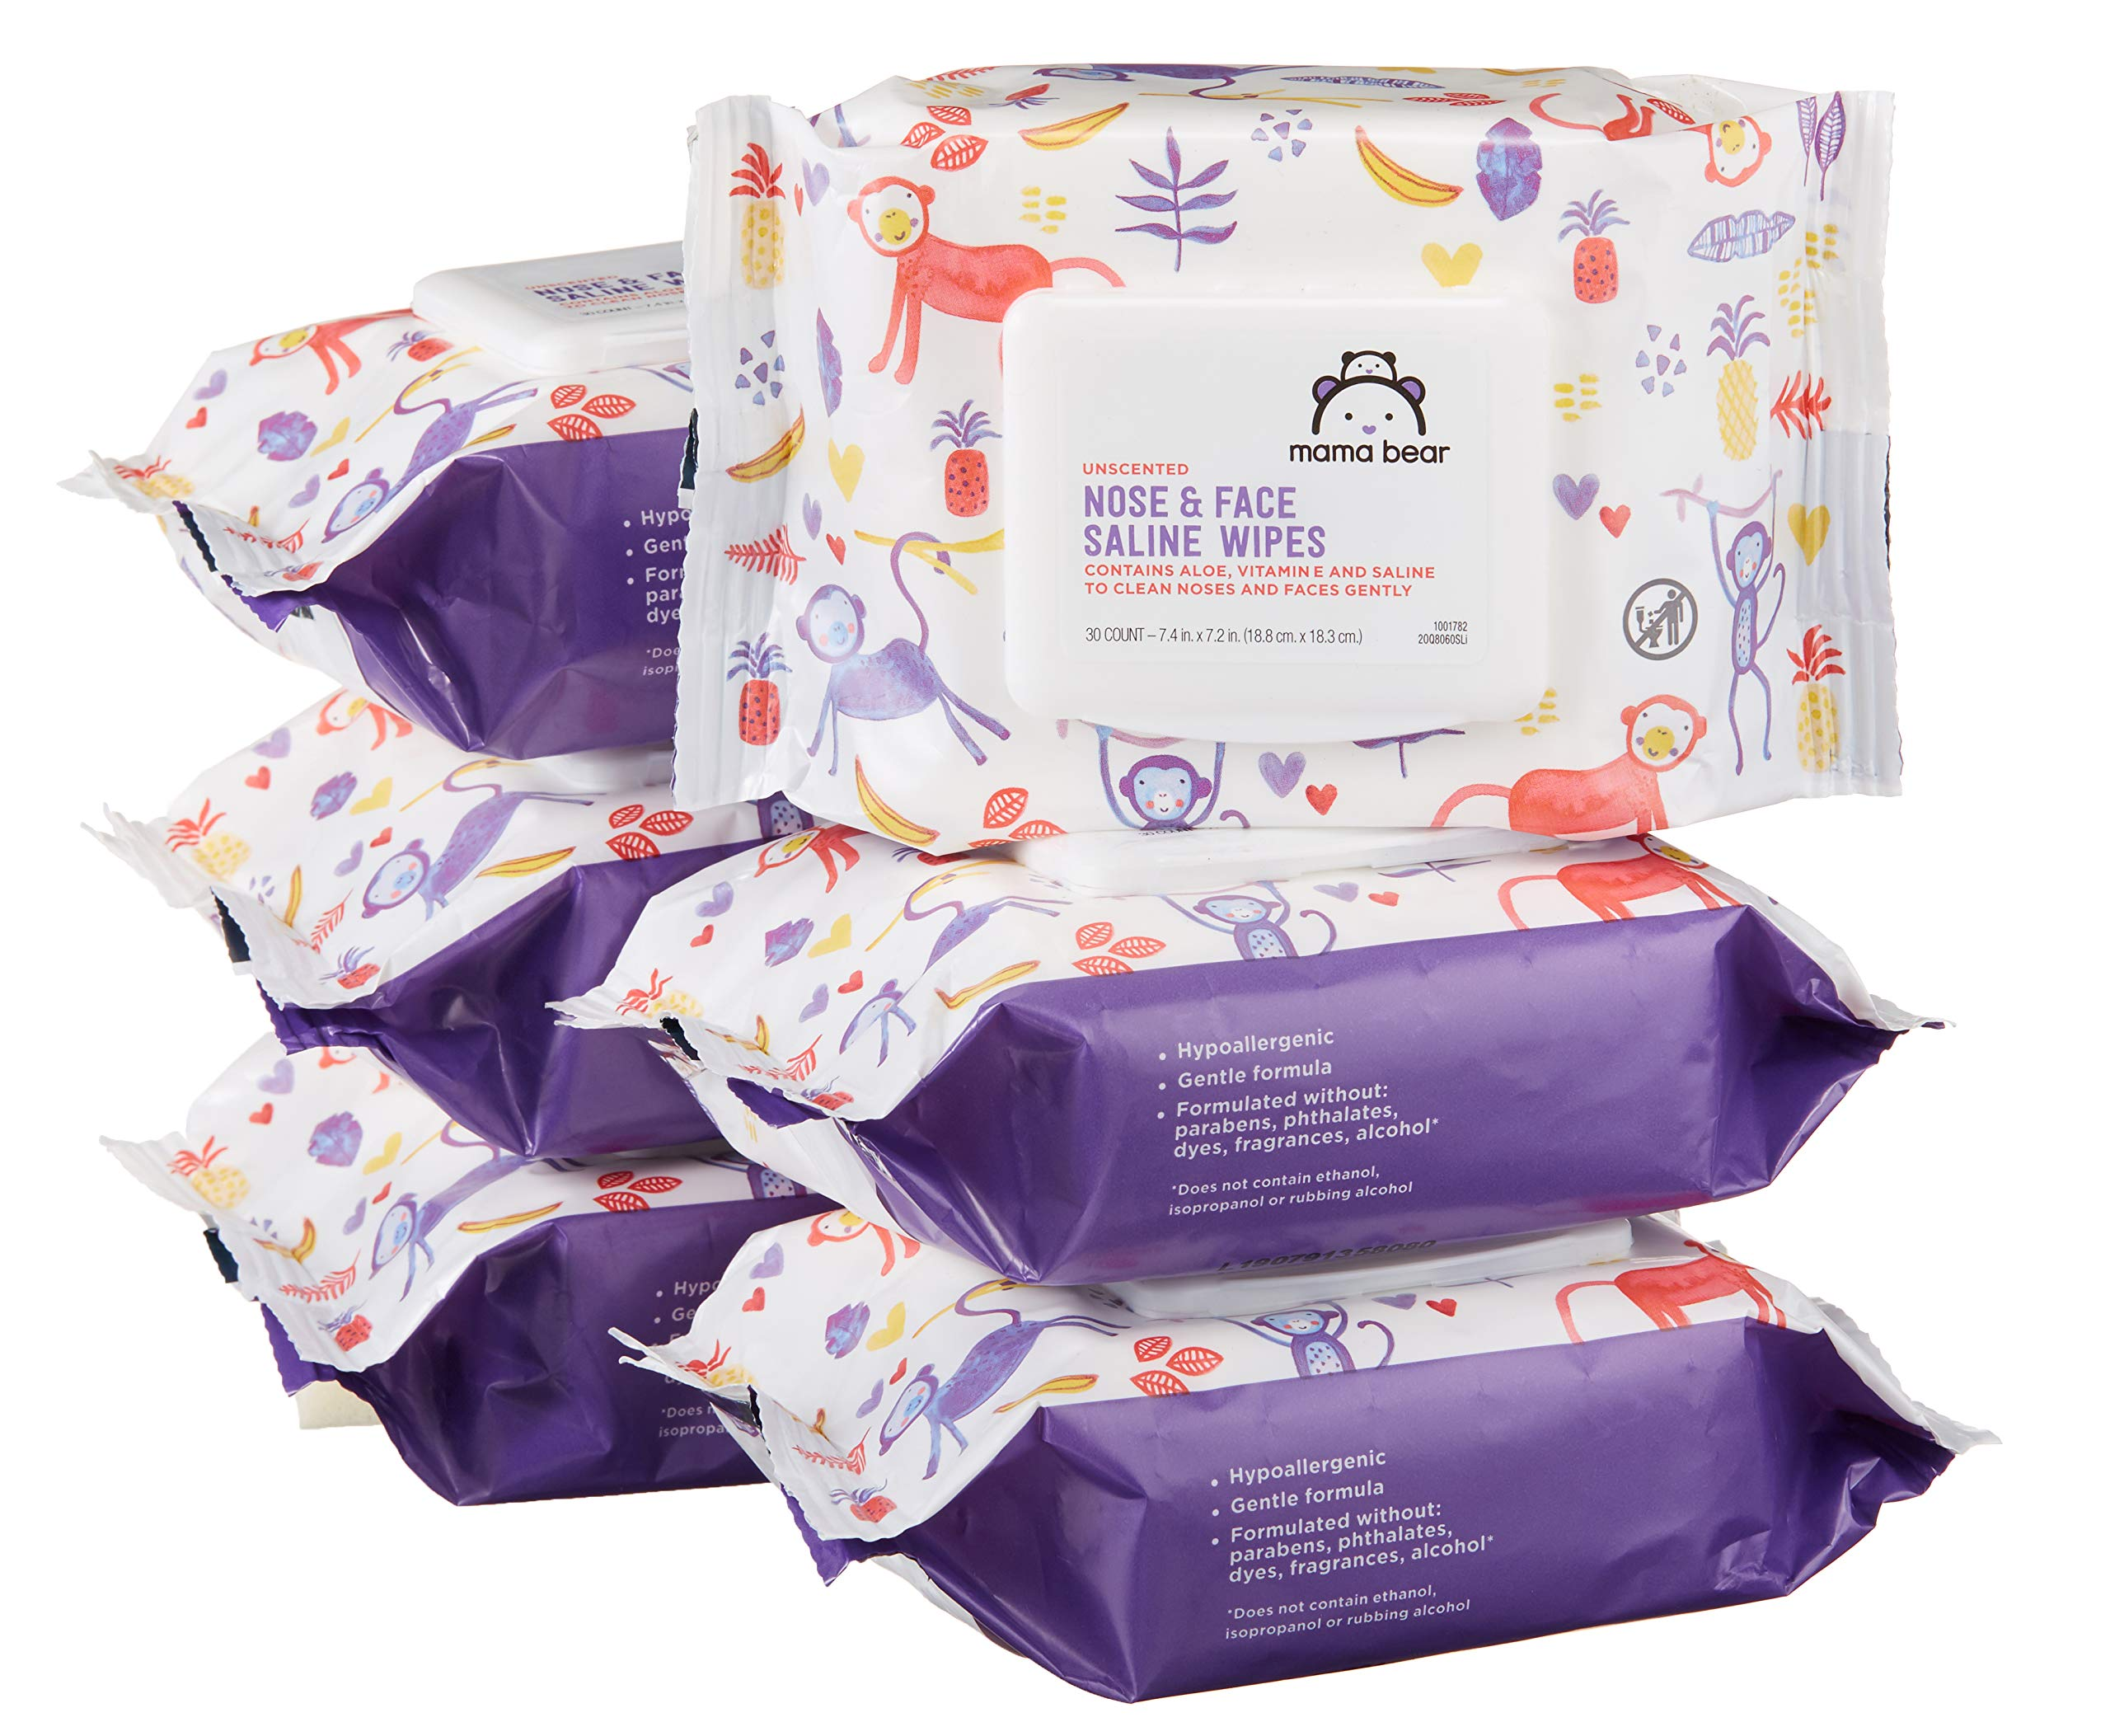 Amazon Brand - Mama Bear Saline Nose and Face Baby Wipes, Hypoallergenic, Unscented, 180 Count (6 Packs of 30 Wipes) by Mama Bear